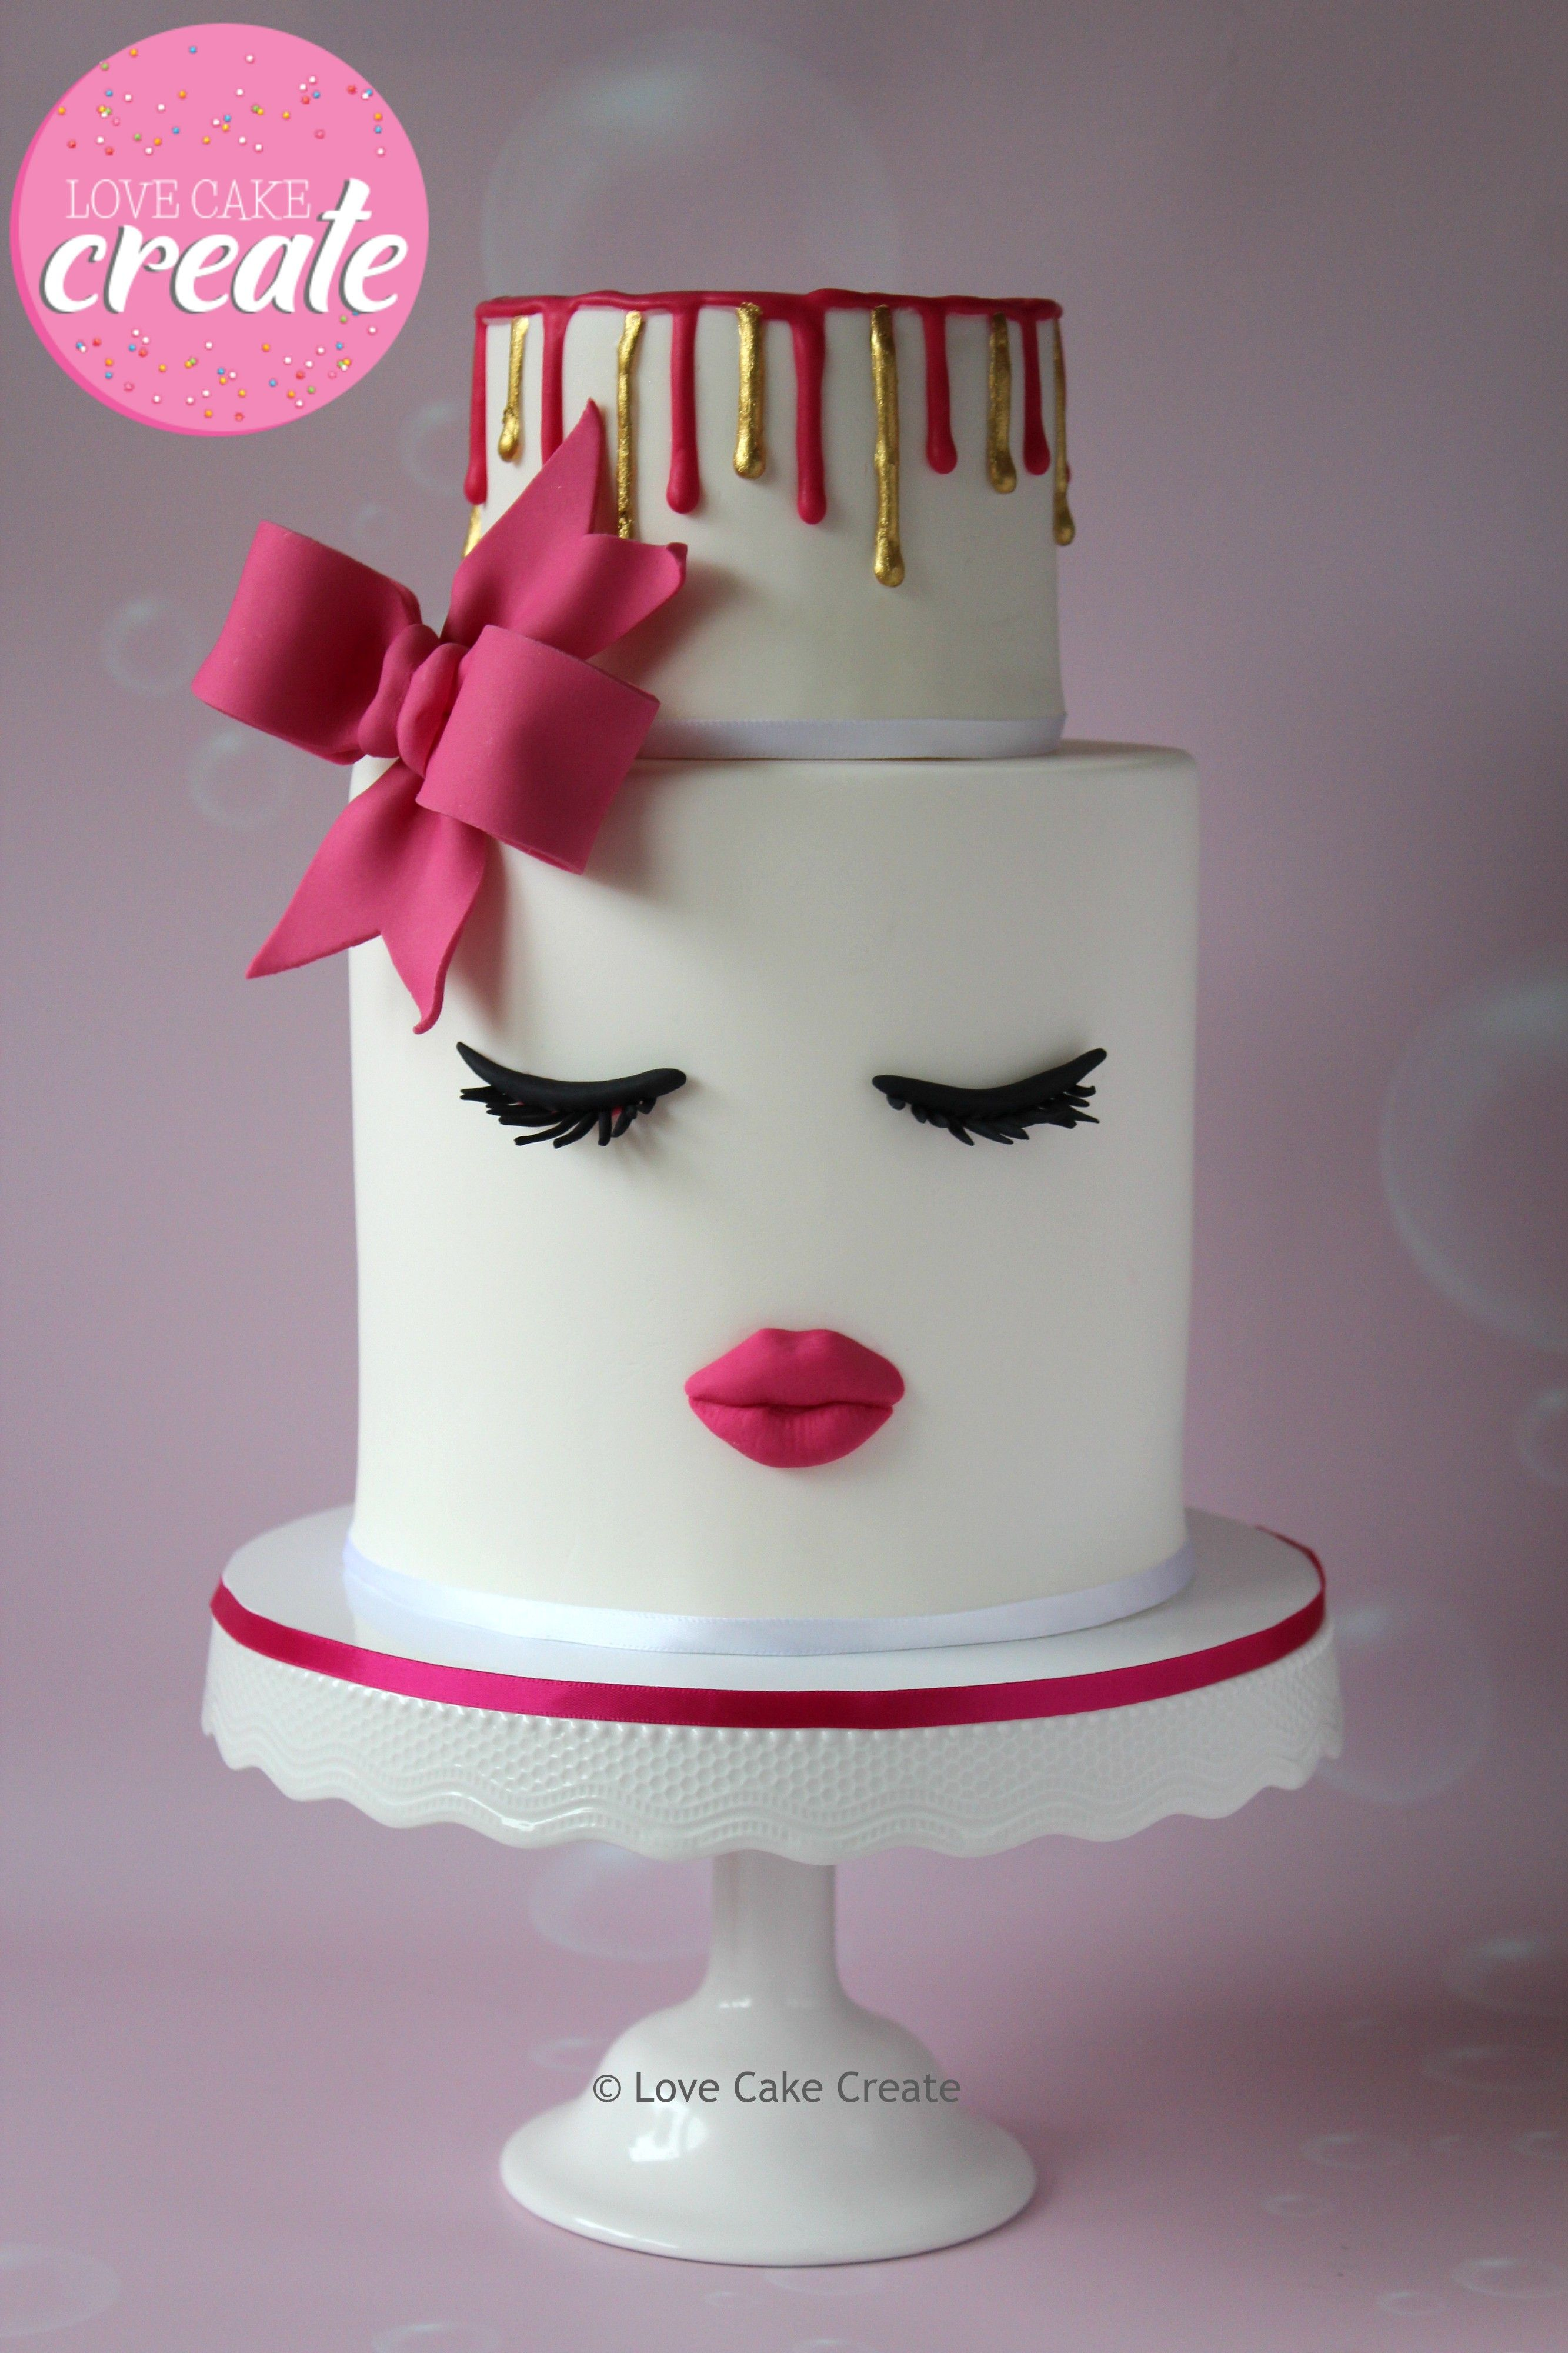 How To Make A Lips And Lashes Cake By Cake Girly Cakes Love Cake